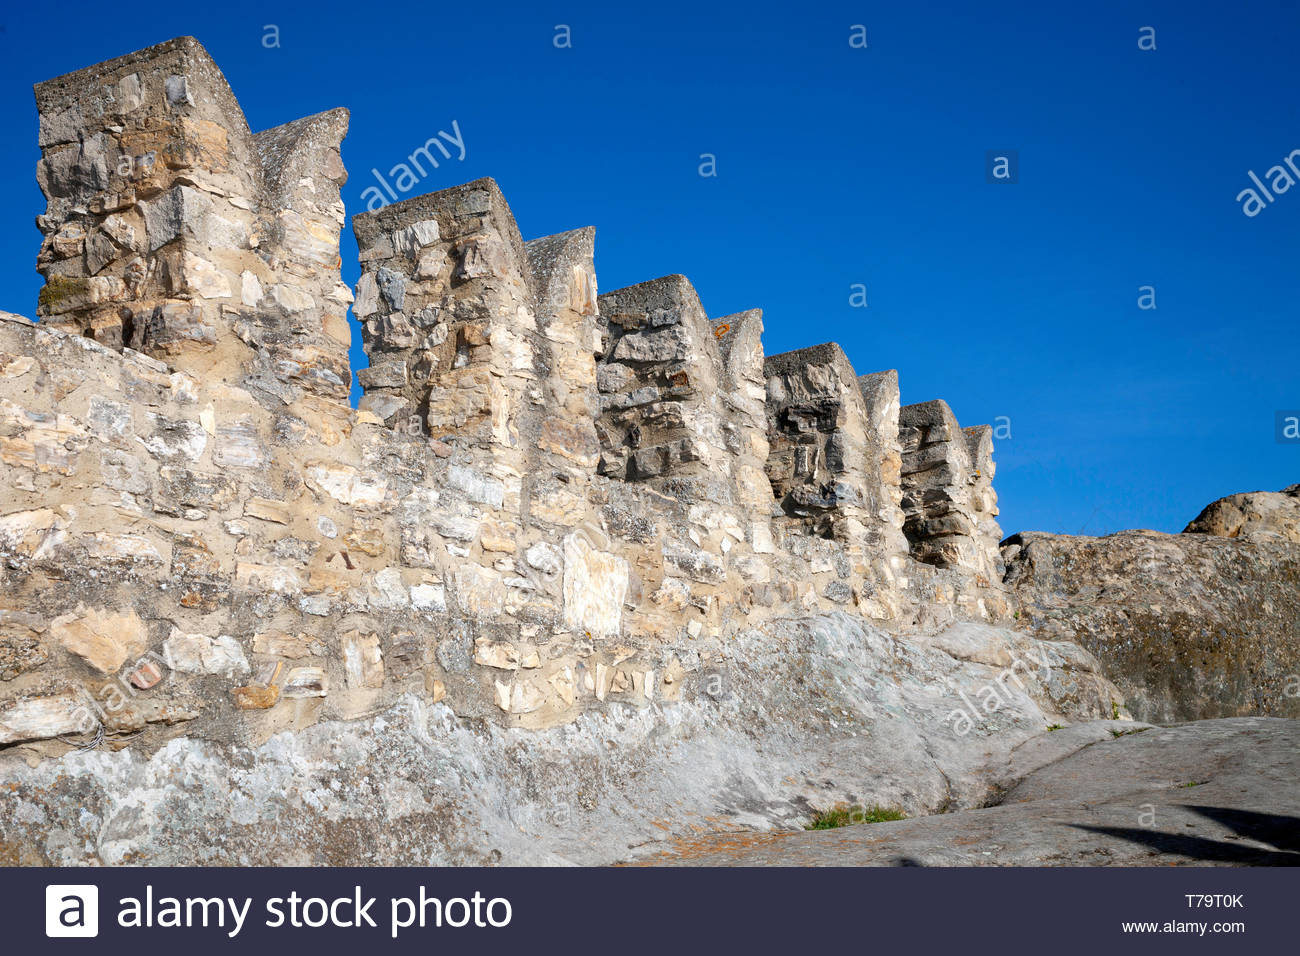 Battlements at the topo of the castle - Stock Image